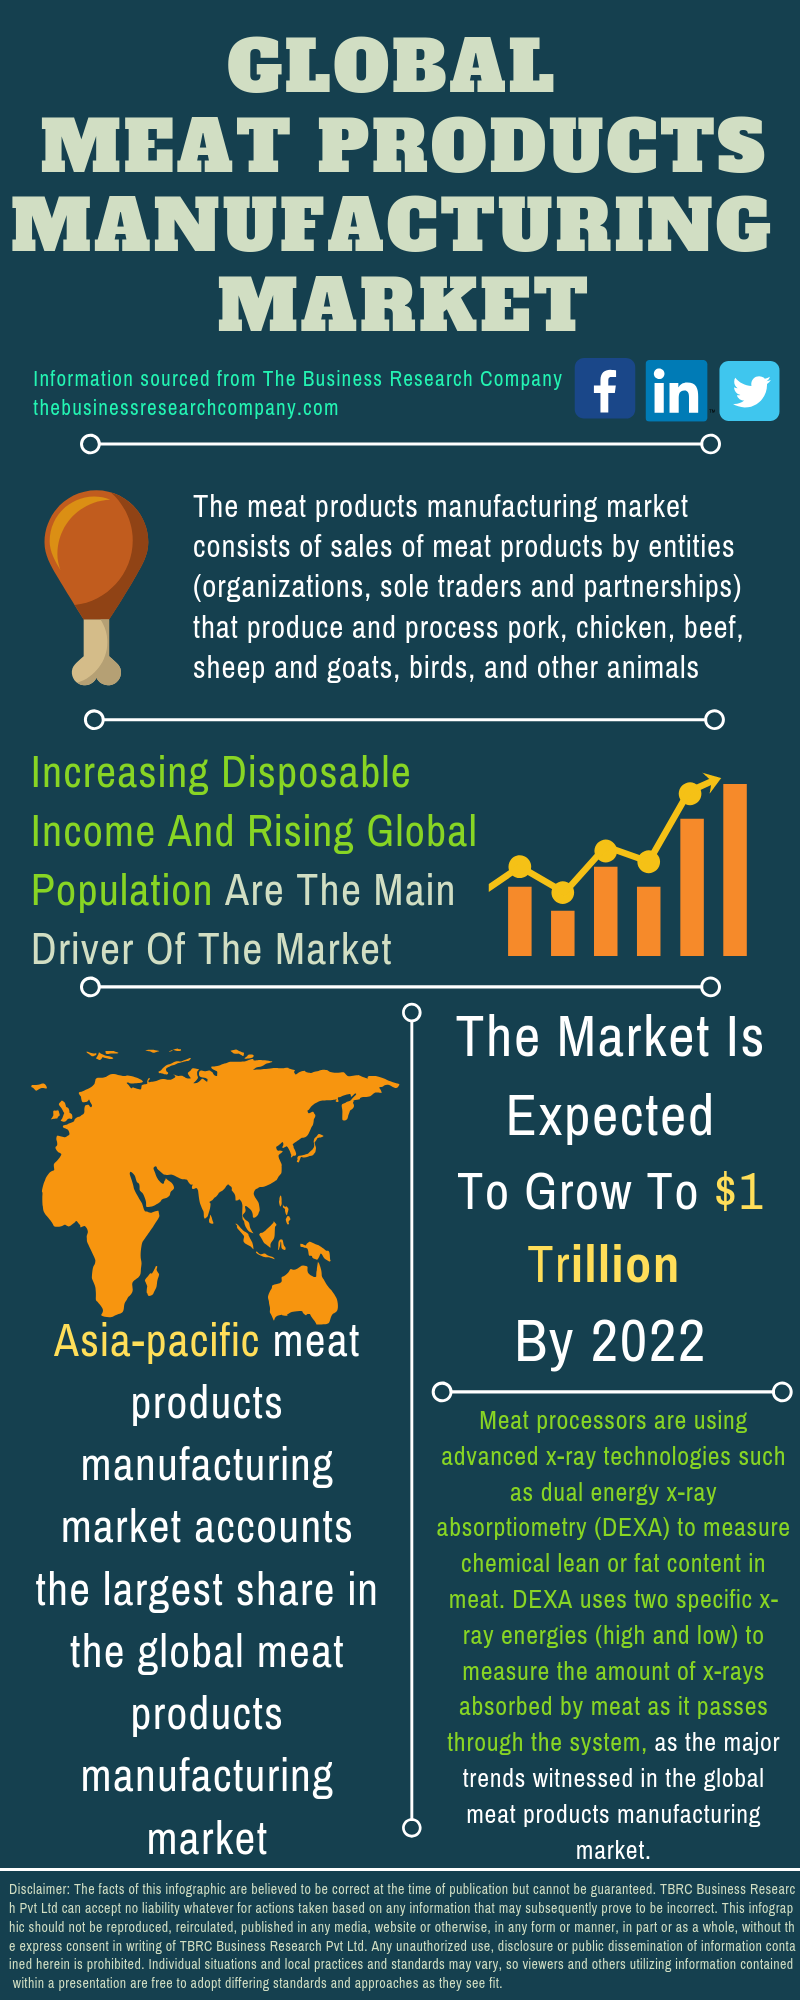 Meat Products Market